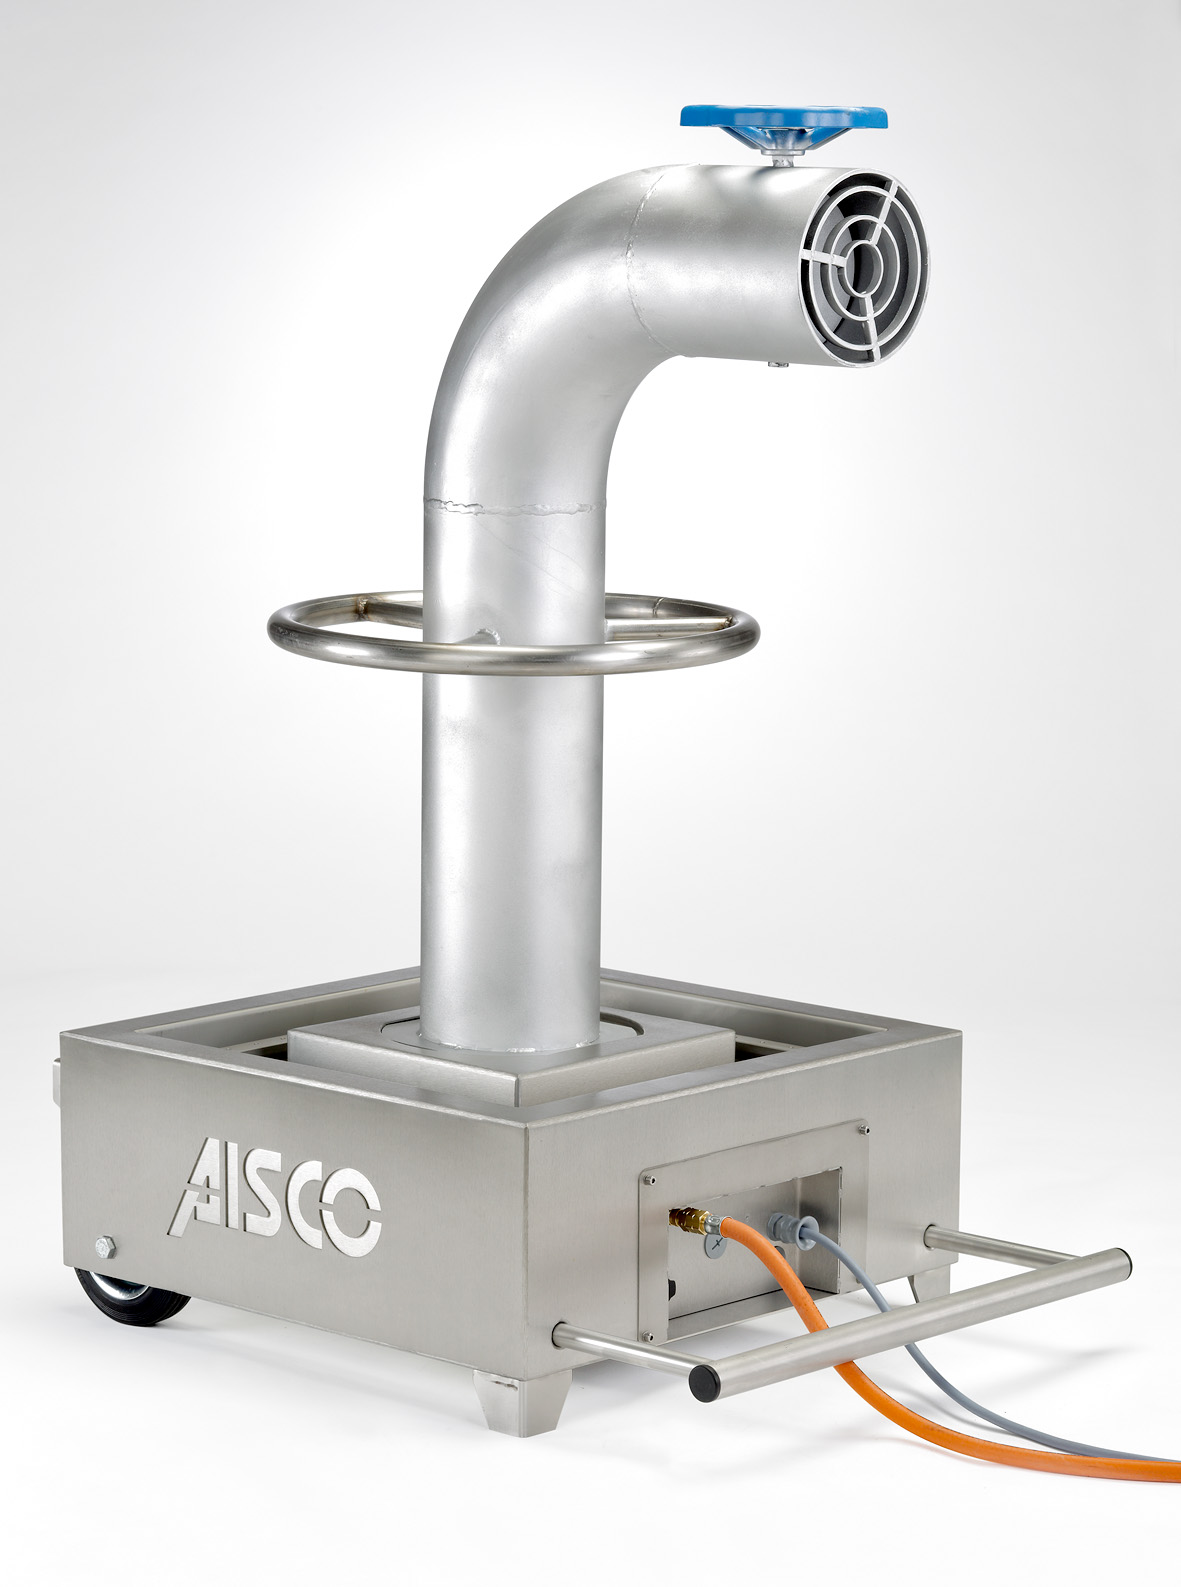 AISCO Firetrainer - Fire Trainer Caddy Industrieventil